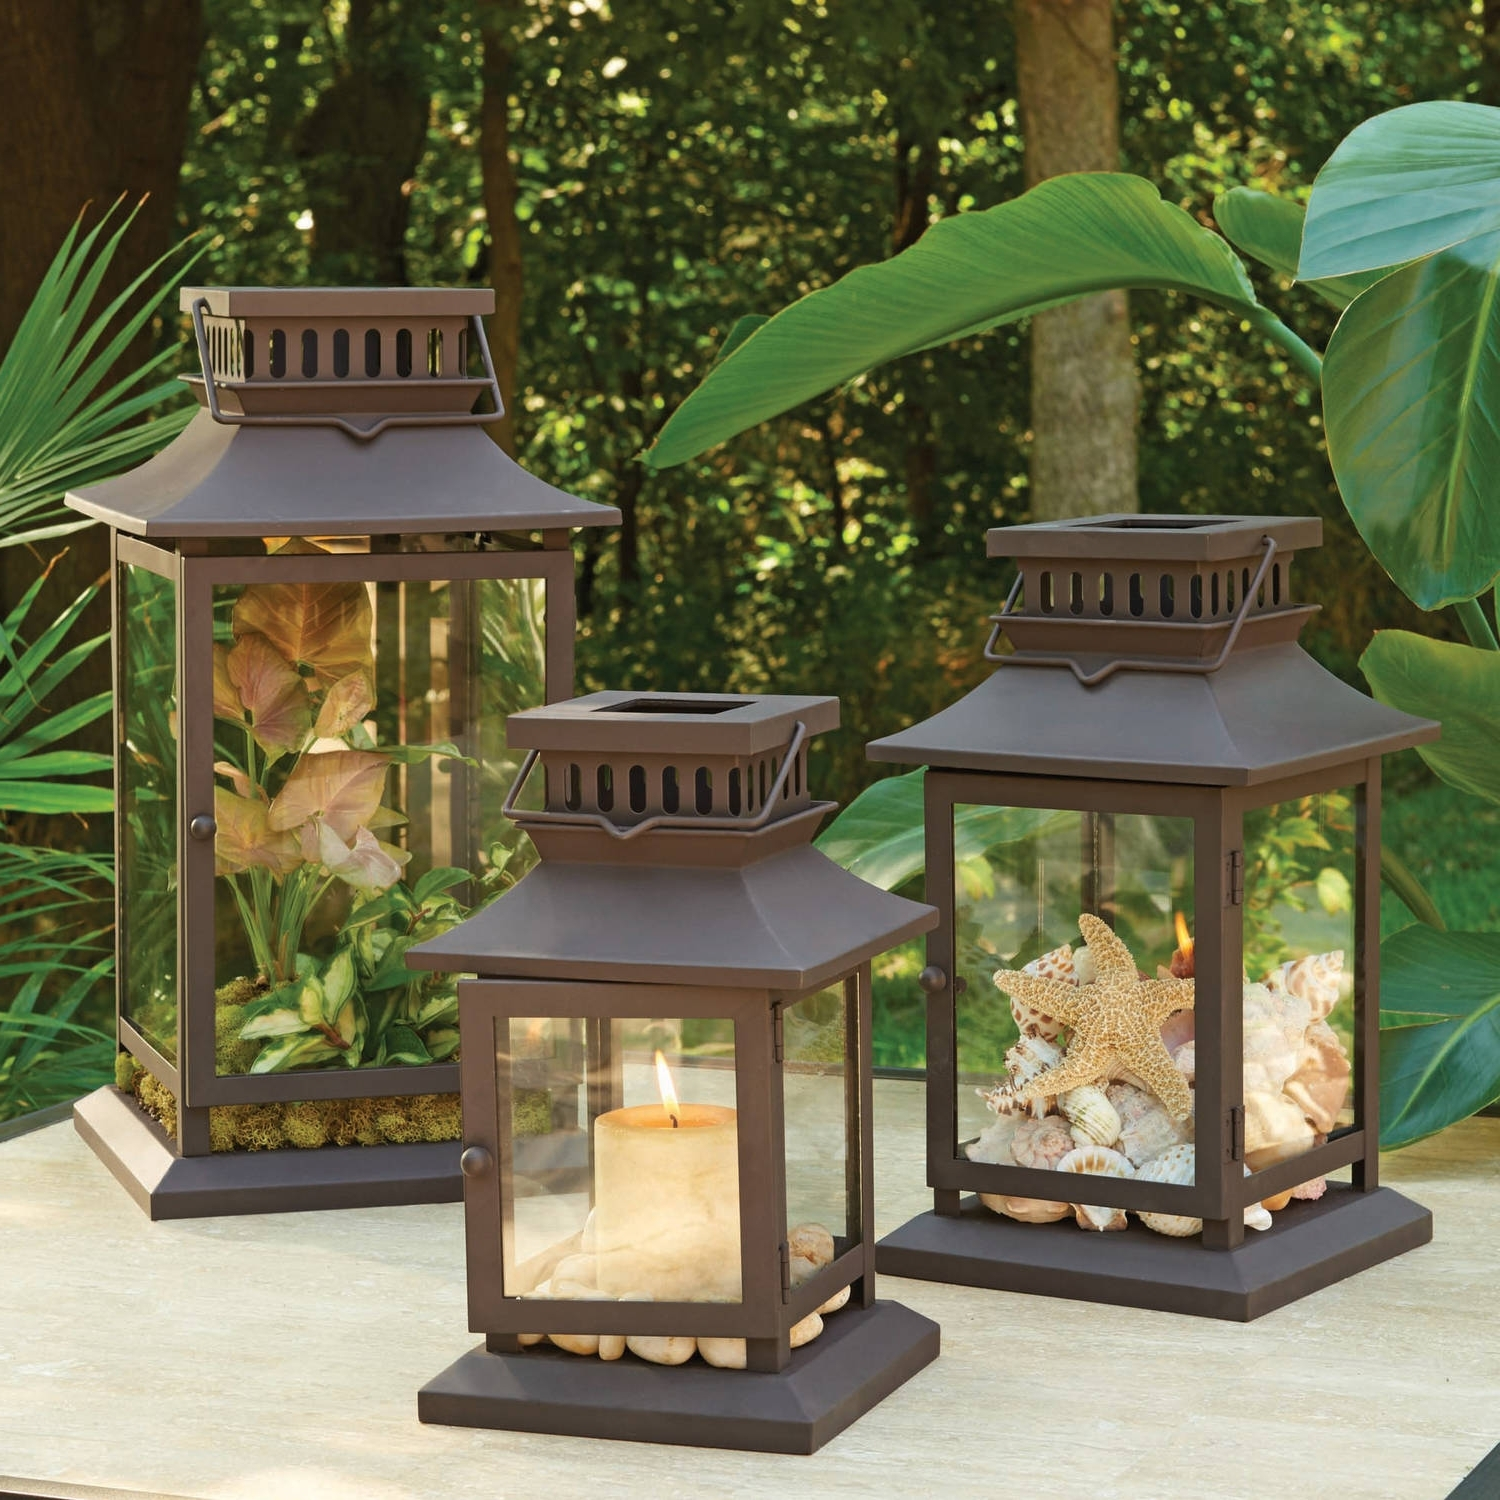 Famous Better Homes And Gardens Square Metal Outdoor Lantern – Walmart Pertaining To Walmart Outdoor Lanterns (View 4 of 20)